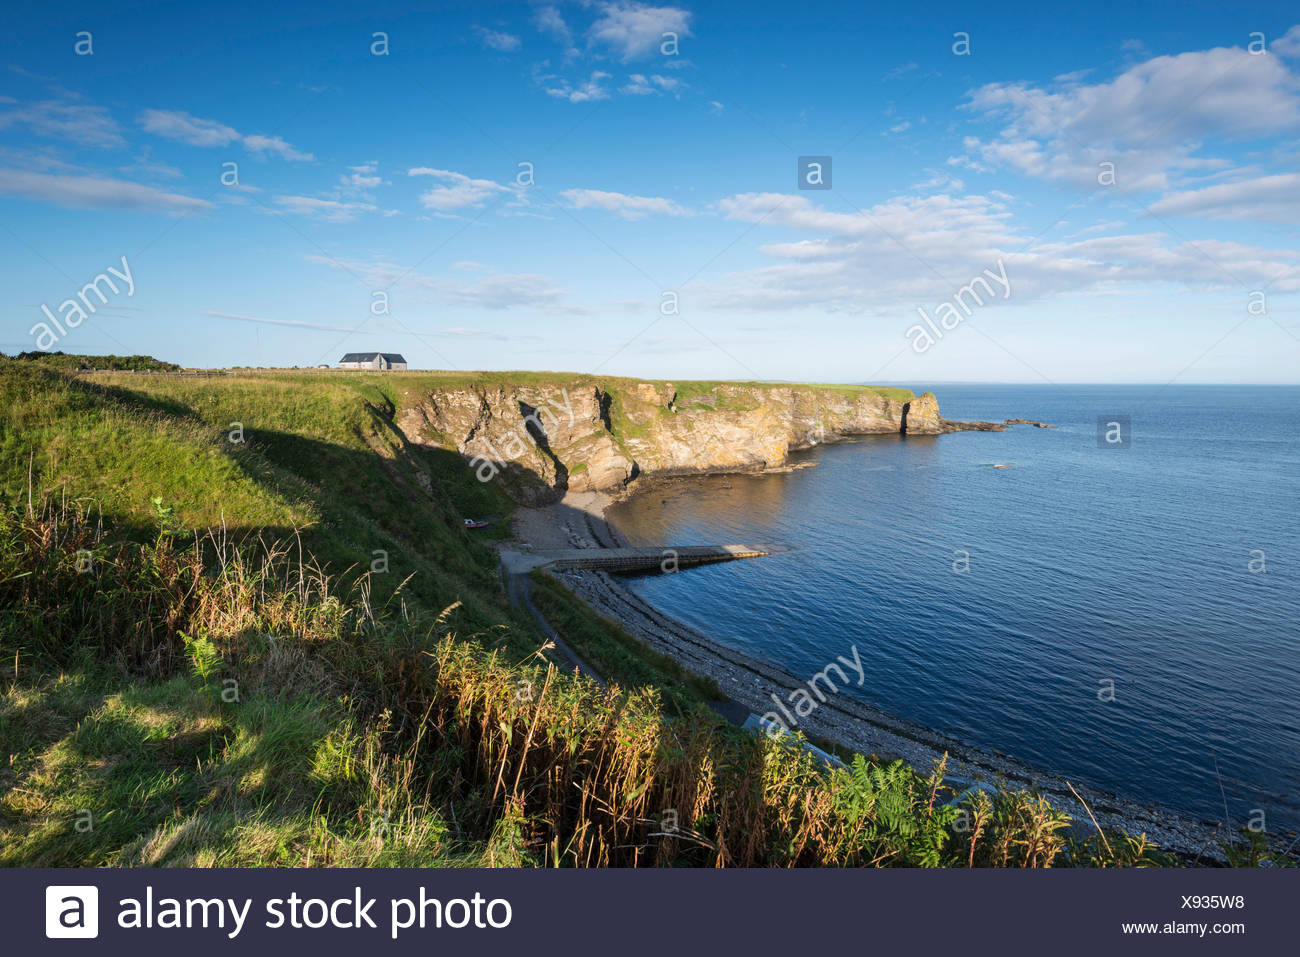 Cliff, Brough Bay near Dunnet Head peninsula, Caithness County, Scotland, United Kingdom, Europe - Stock Image